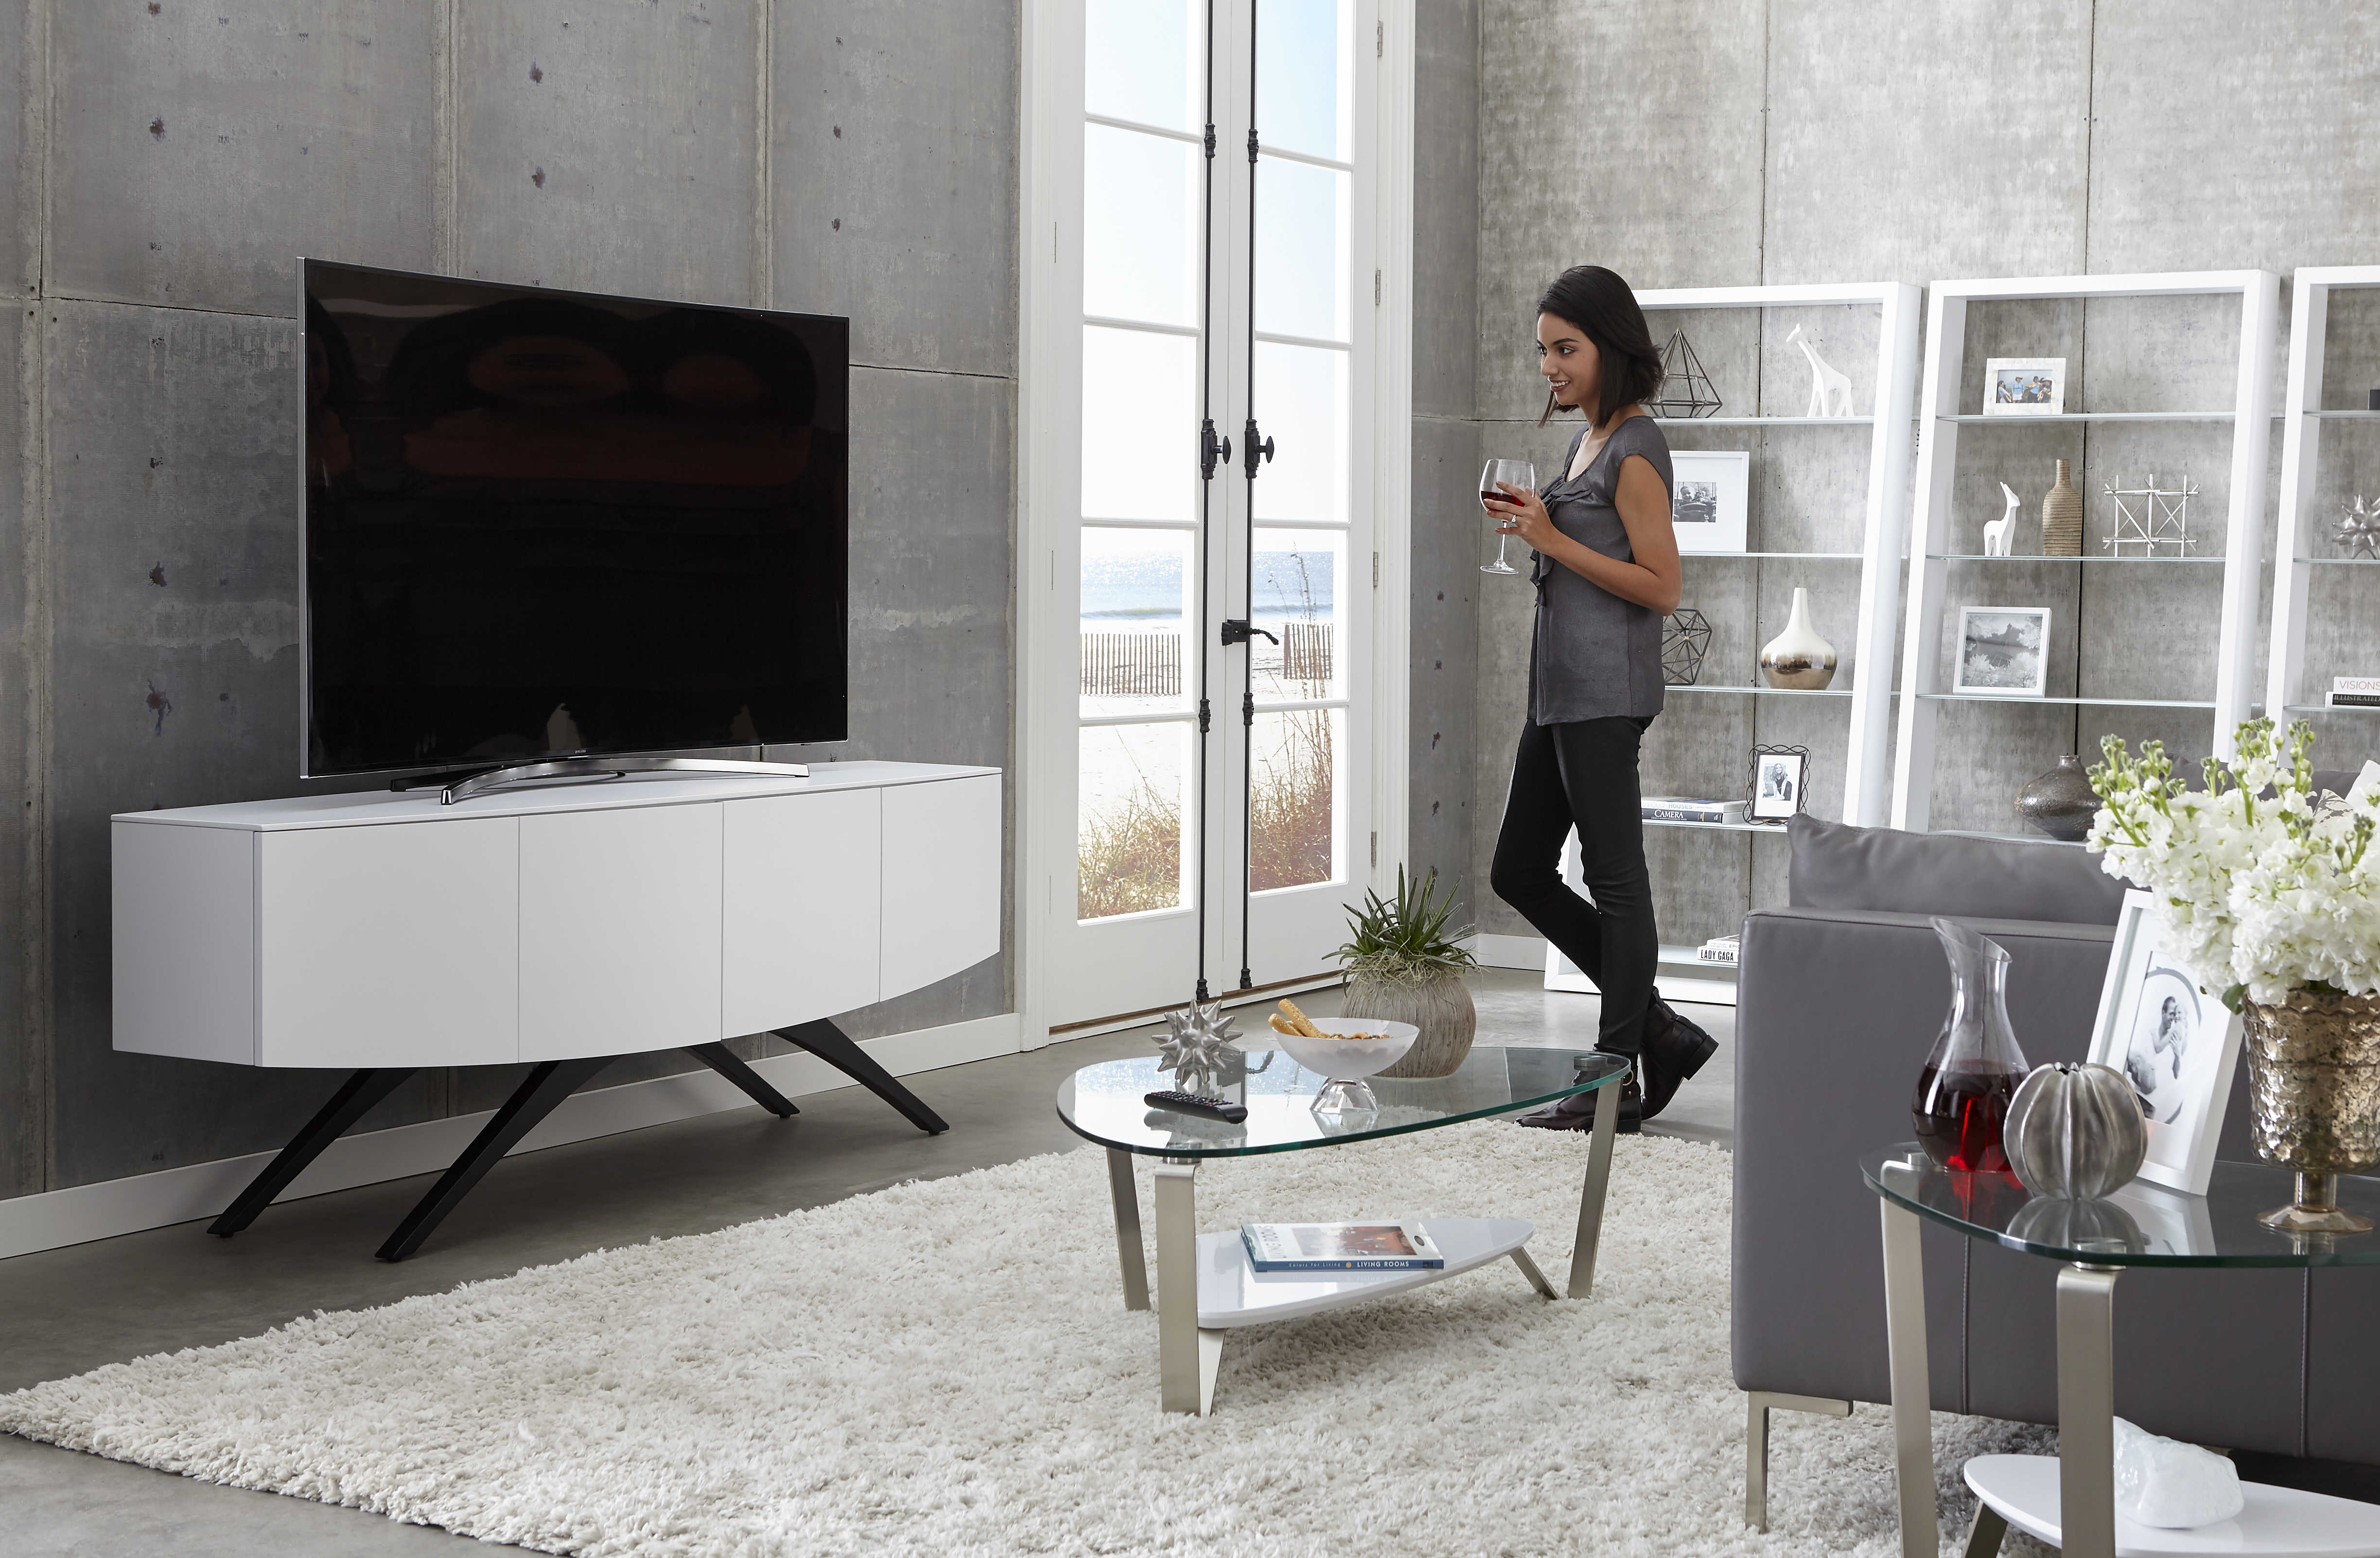 smooth product stand zm stainless inches cupboard l furniture x tanami modern over tv satin bdi white steel w